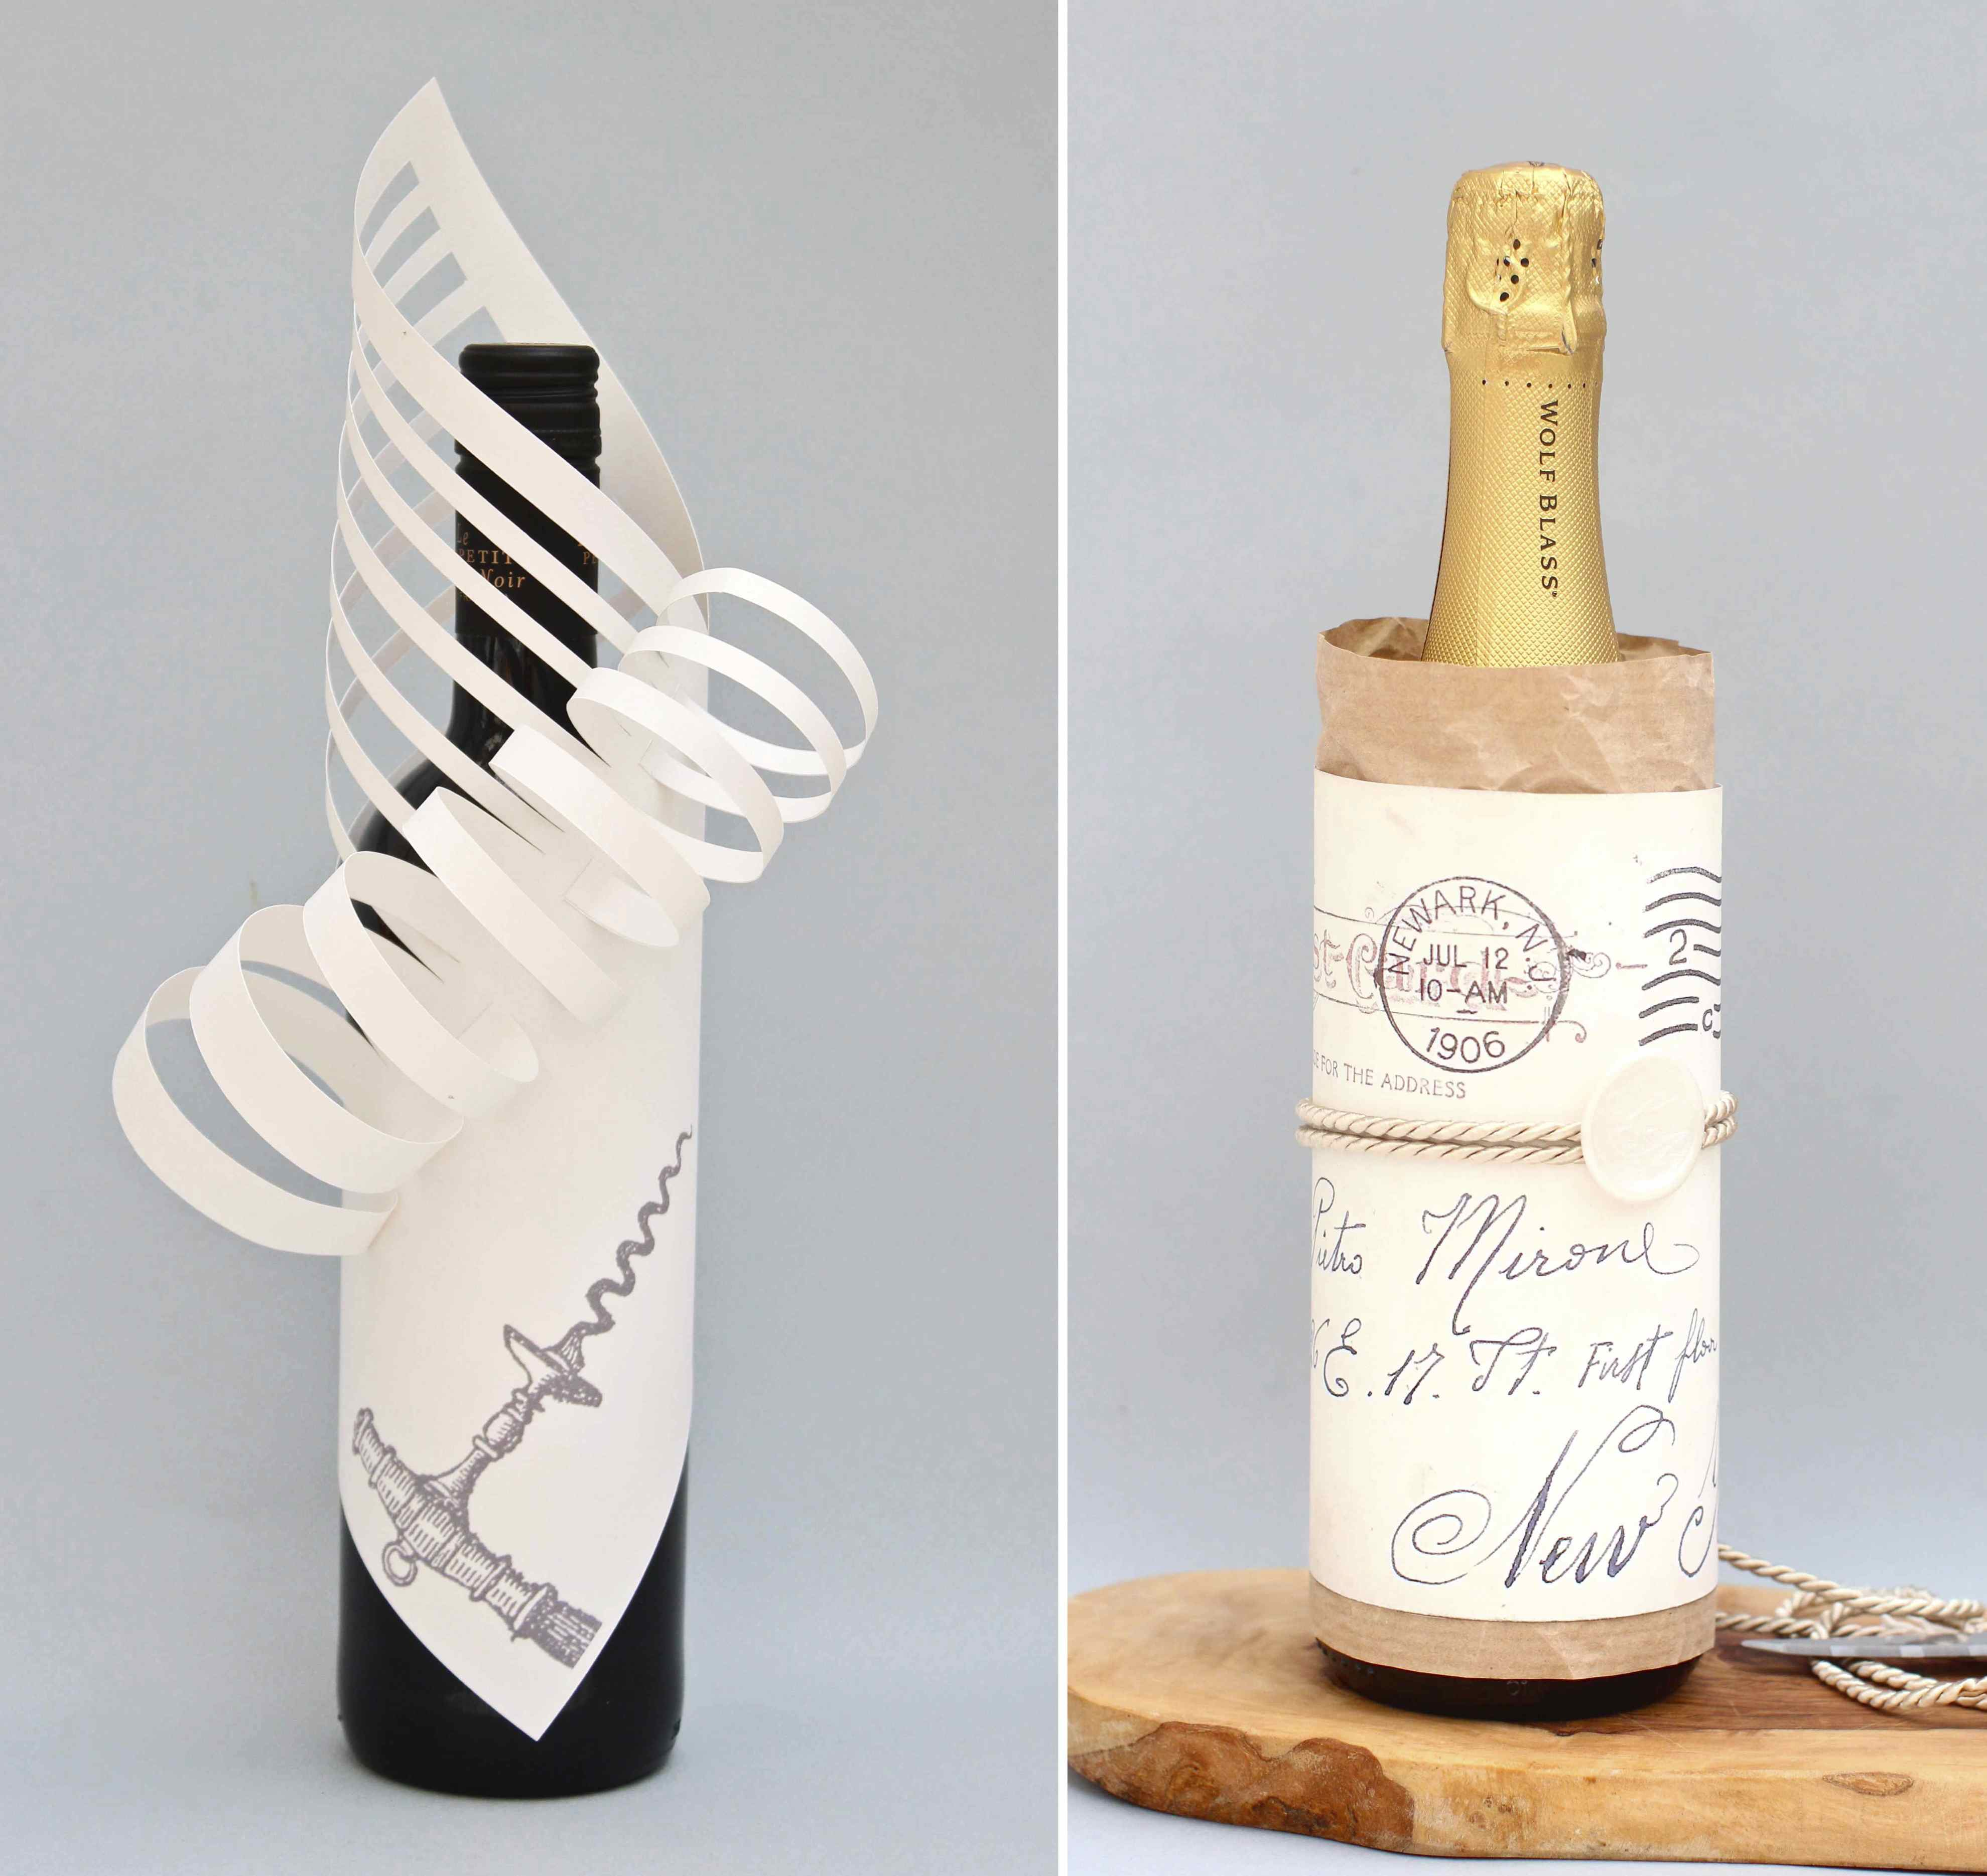 Funny Wine Bottle Holders Gift Wrapping On Pinterest Wrapping Gift Bags And Packaging